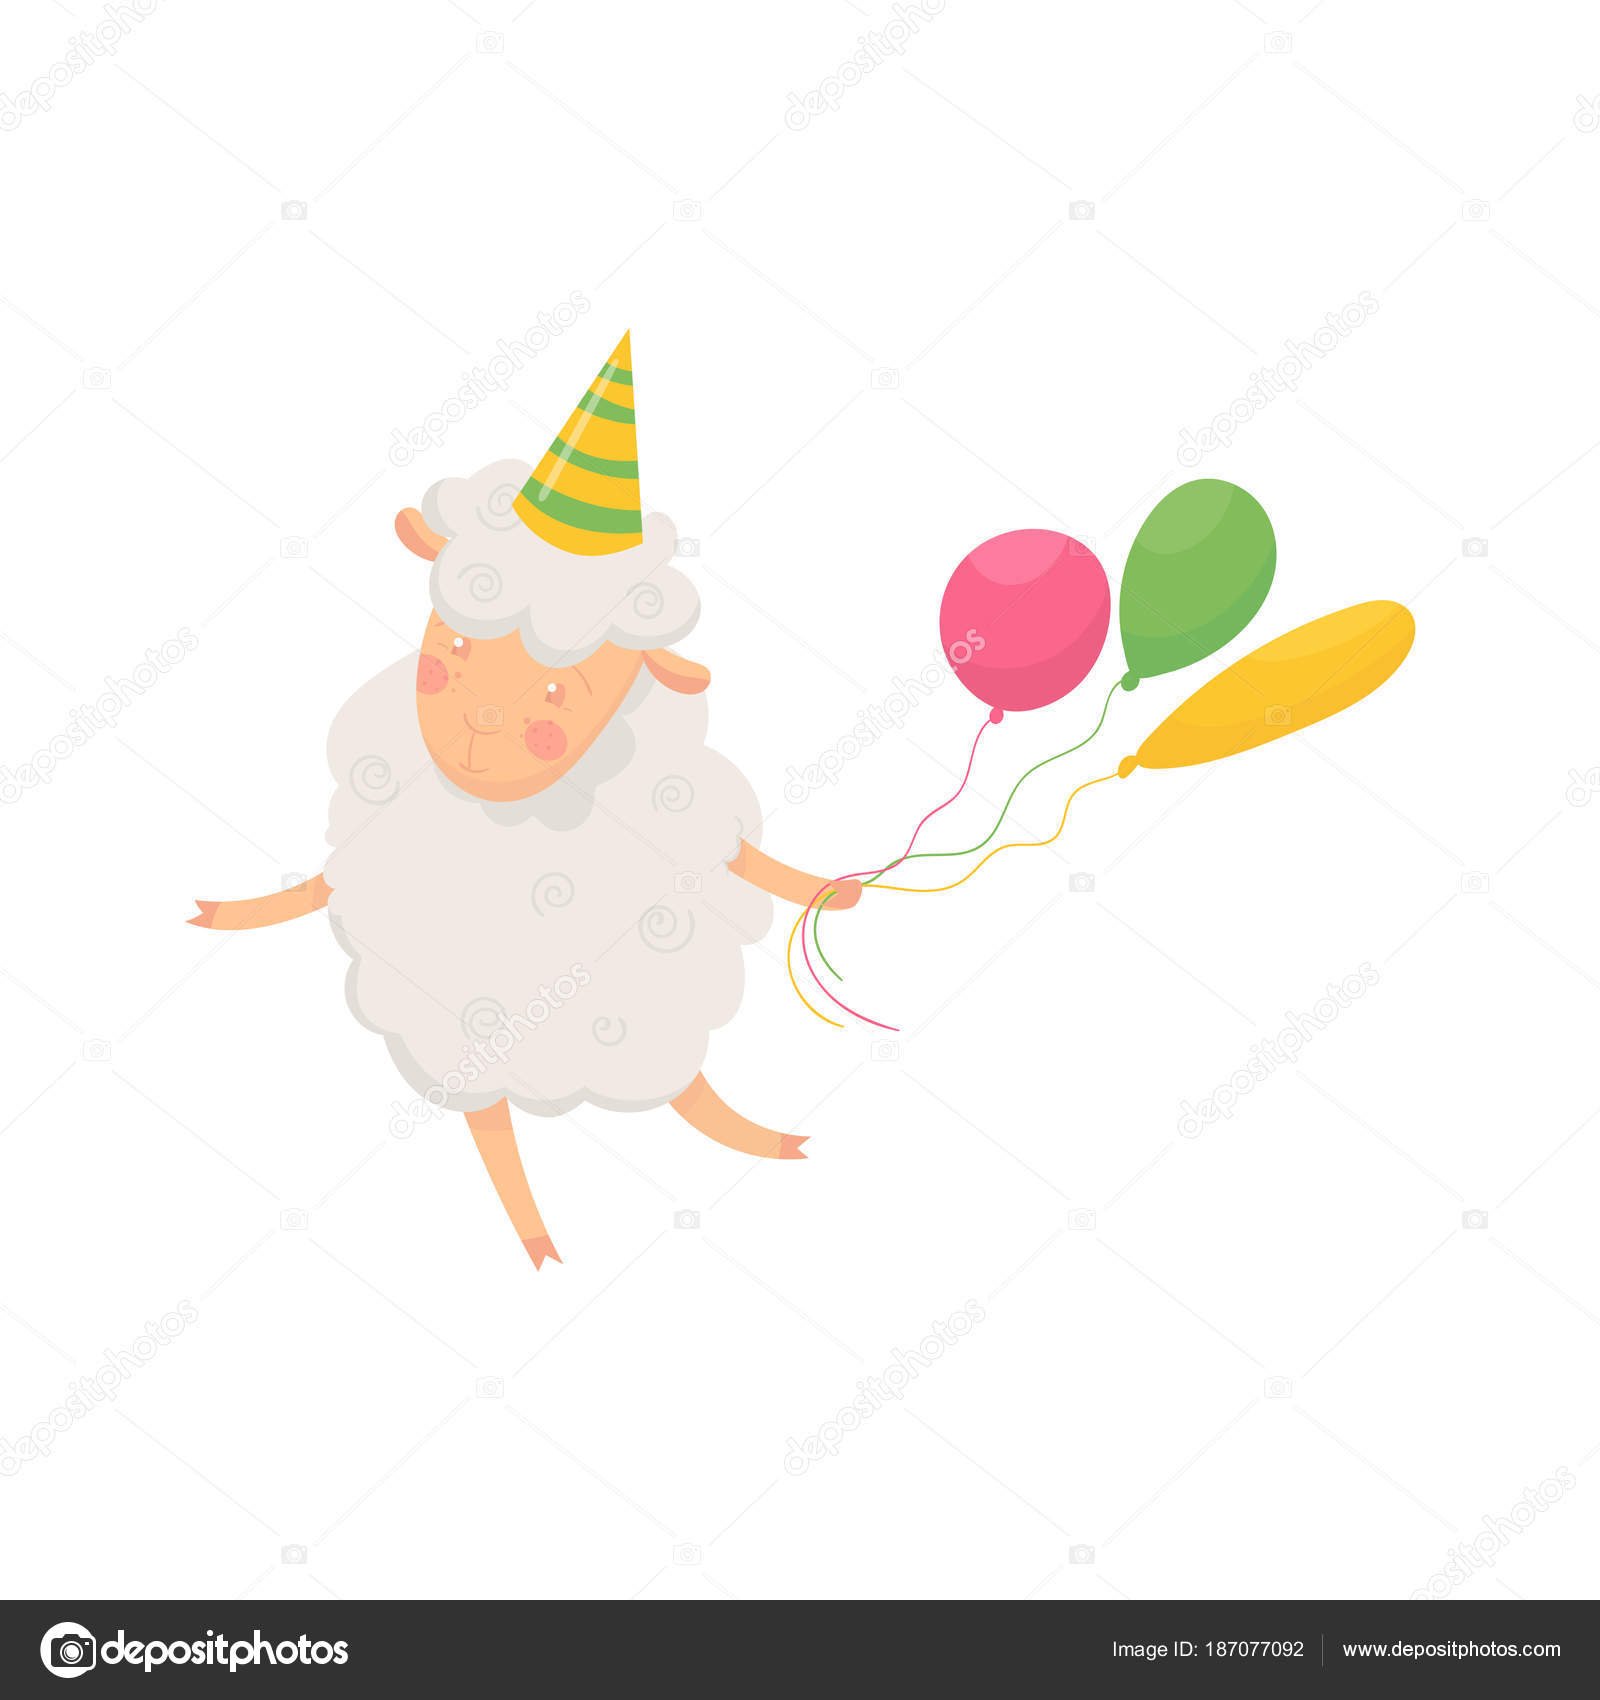 Happy Fluffy Sheep With Party Hat On Head Holding Colorful Balloons Cartoon Character Of Funny